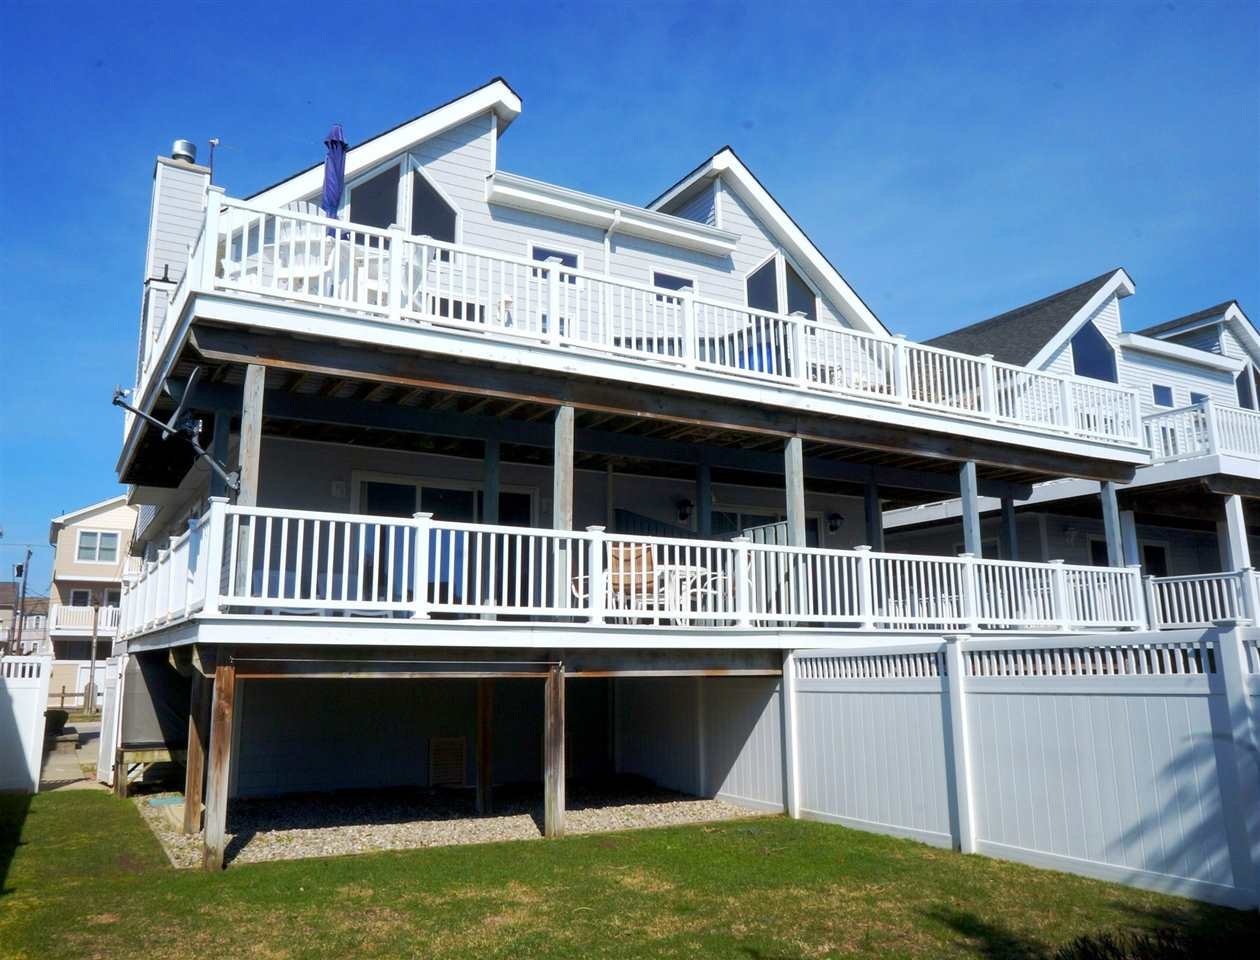 3010 Marine Pl, Sea Isle City, NJ 08243